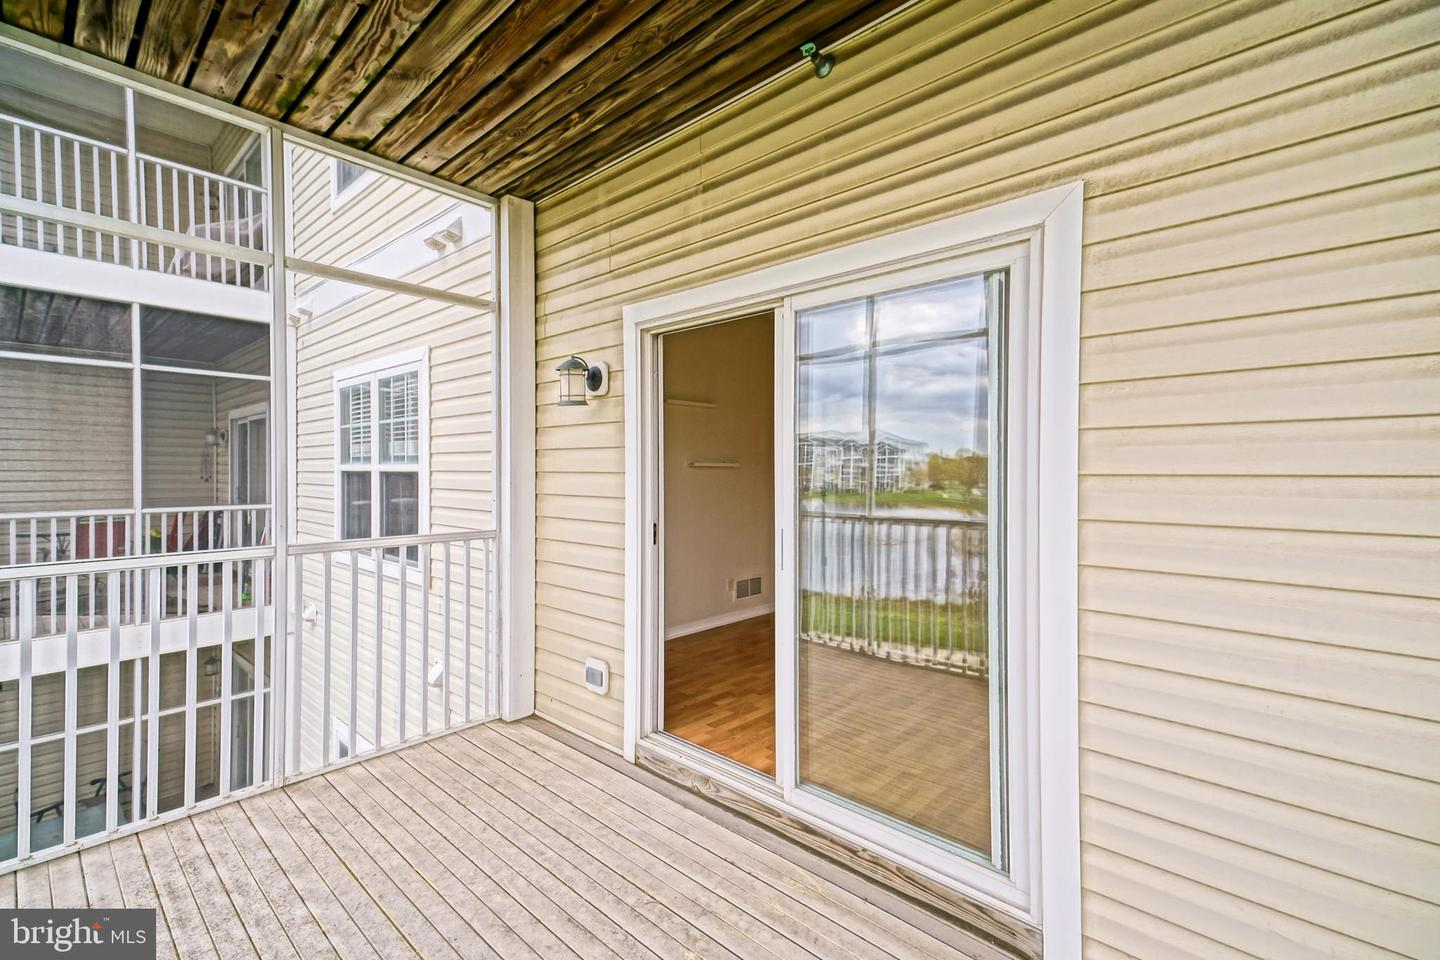 DESU139032-301664483035-2019-06-24-14-51-56 33156 N Village Loop #4202 | Lewes, DE Real Estate For Sale | MLS# Desu139032  - Lee Ann Group